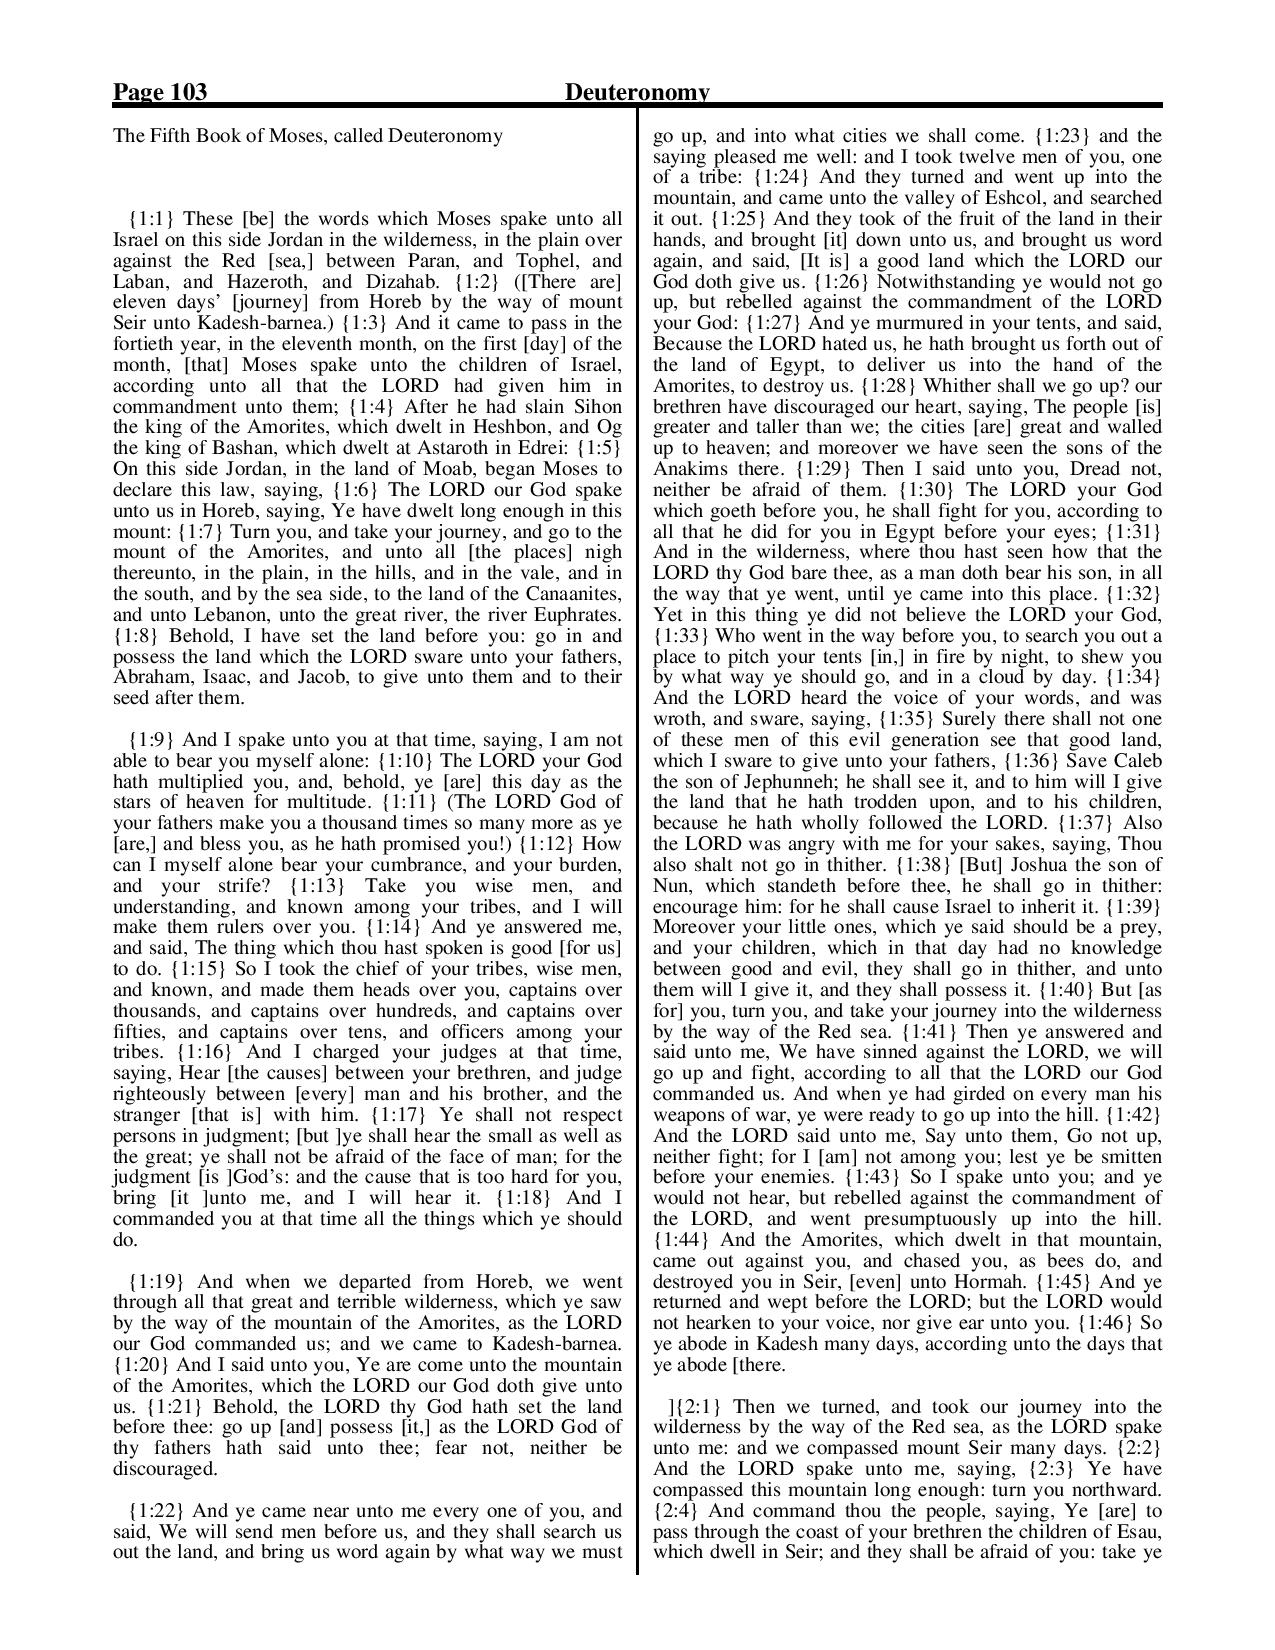 King-James-Bible-KJV-Bible-PDF-page-124